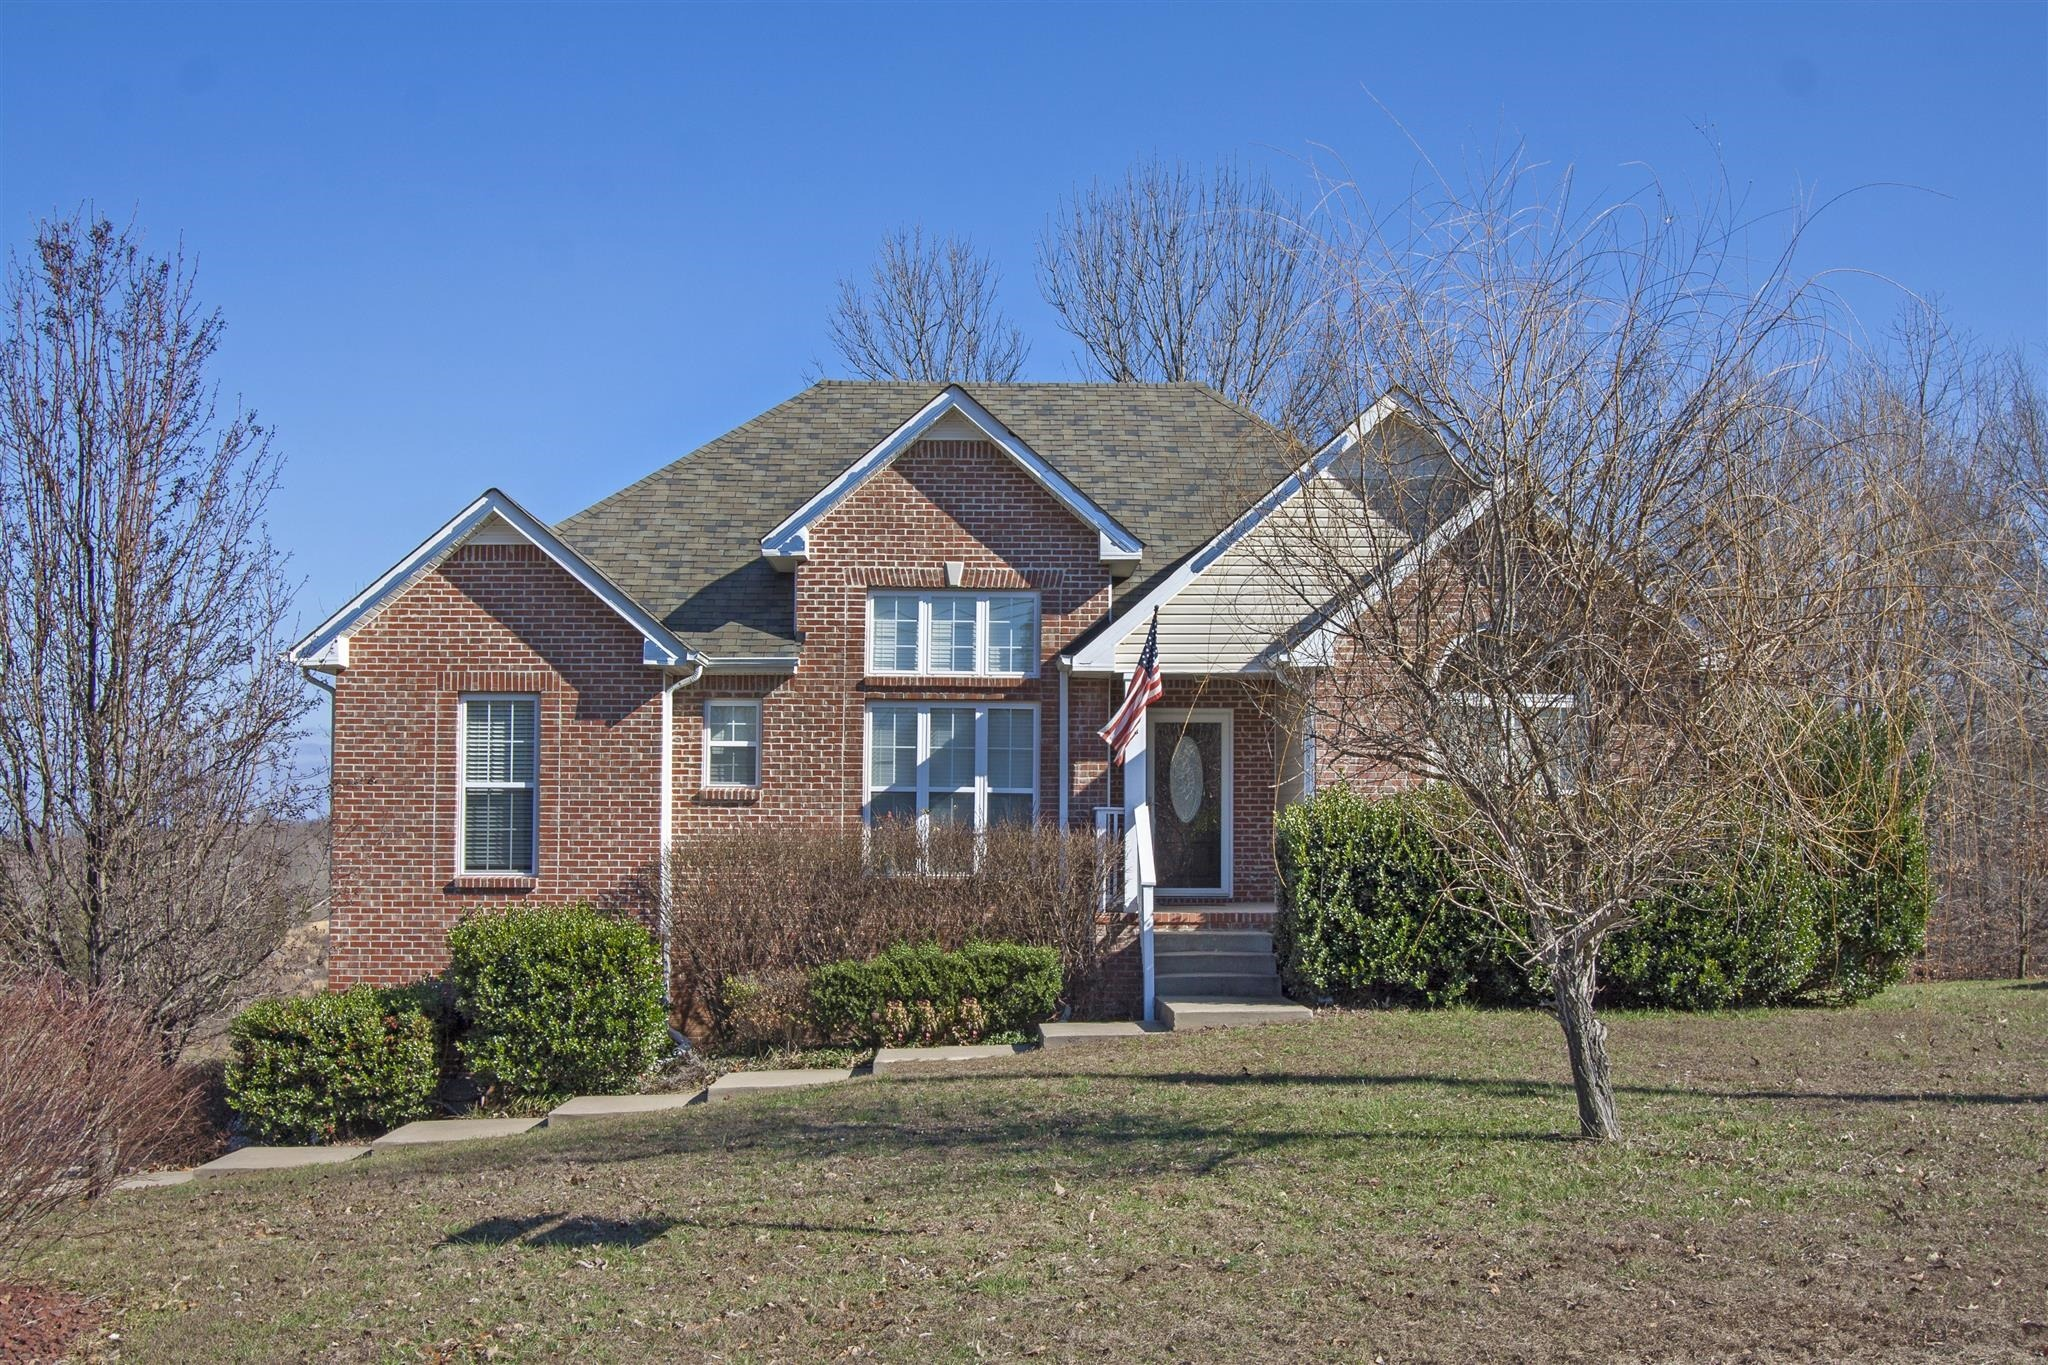 Homes for Sale in Buffalo Run Subdivision Clarksville TN